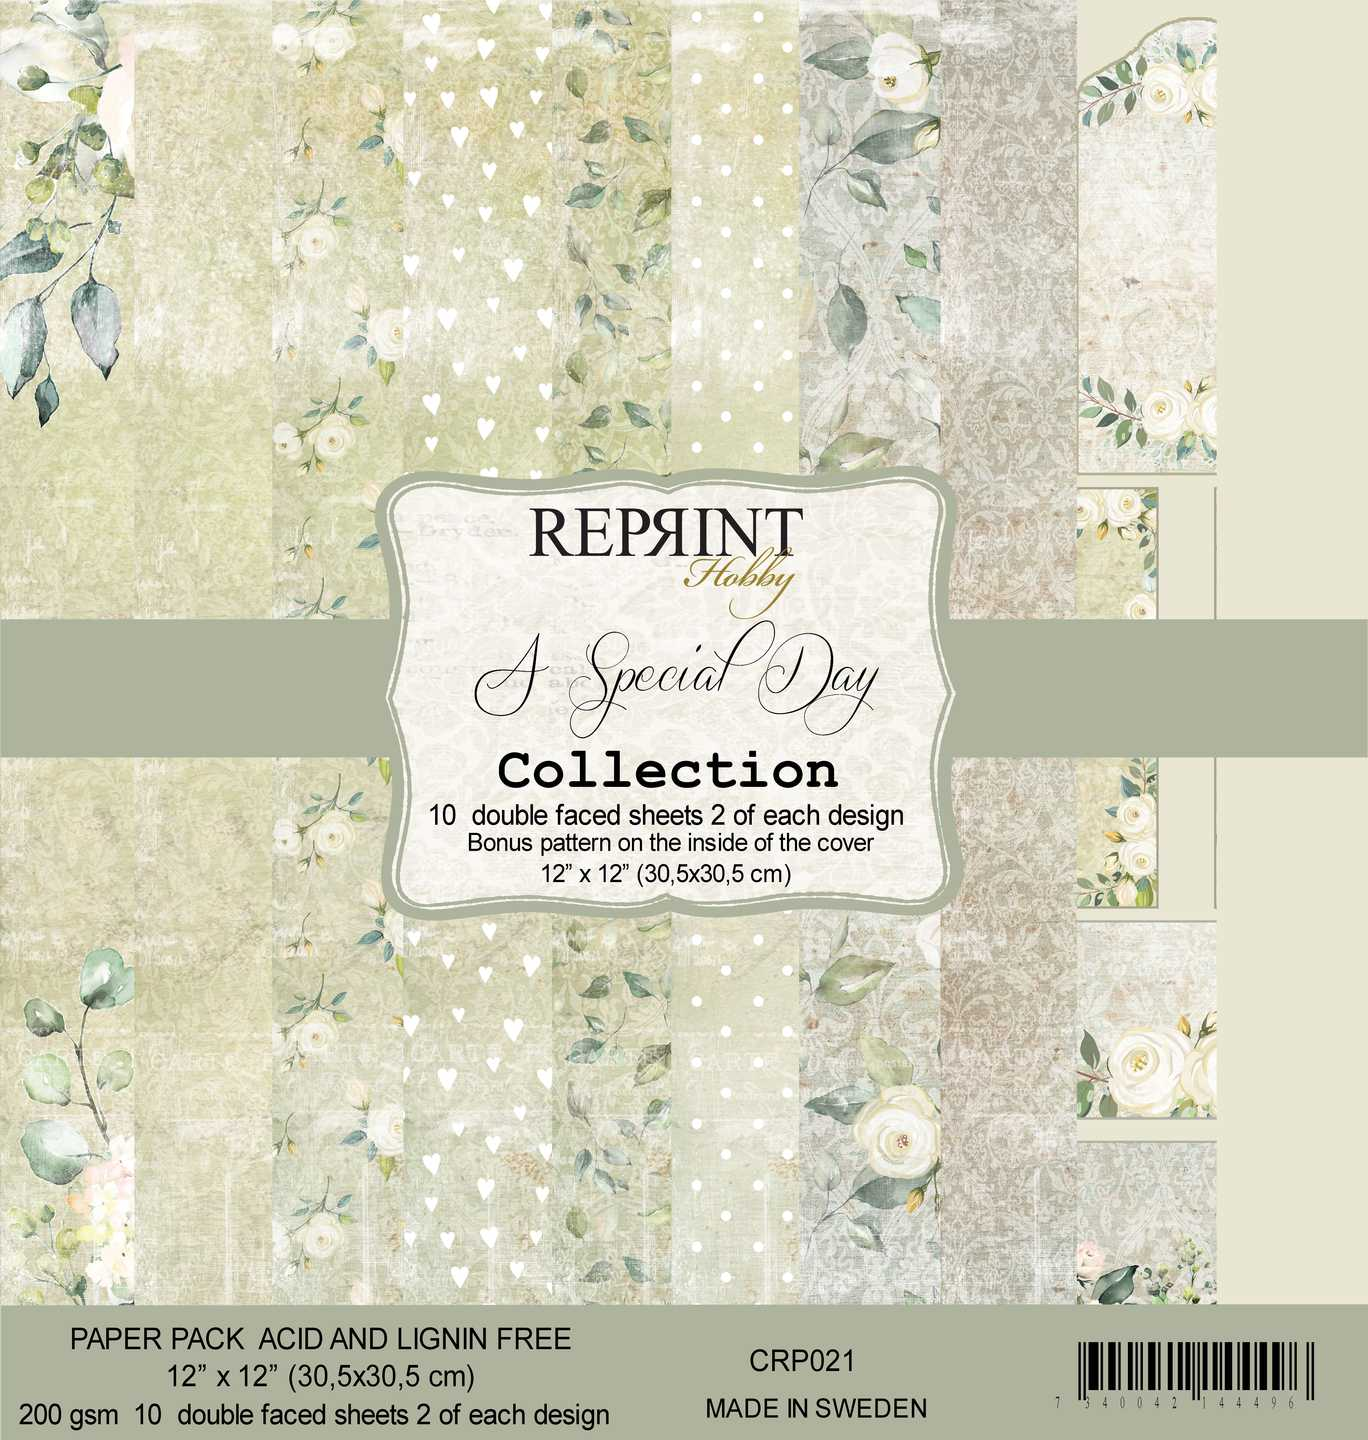 Reprint 12x12, A special day collection paper pack, CRP021